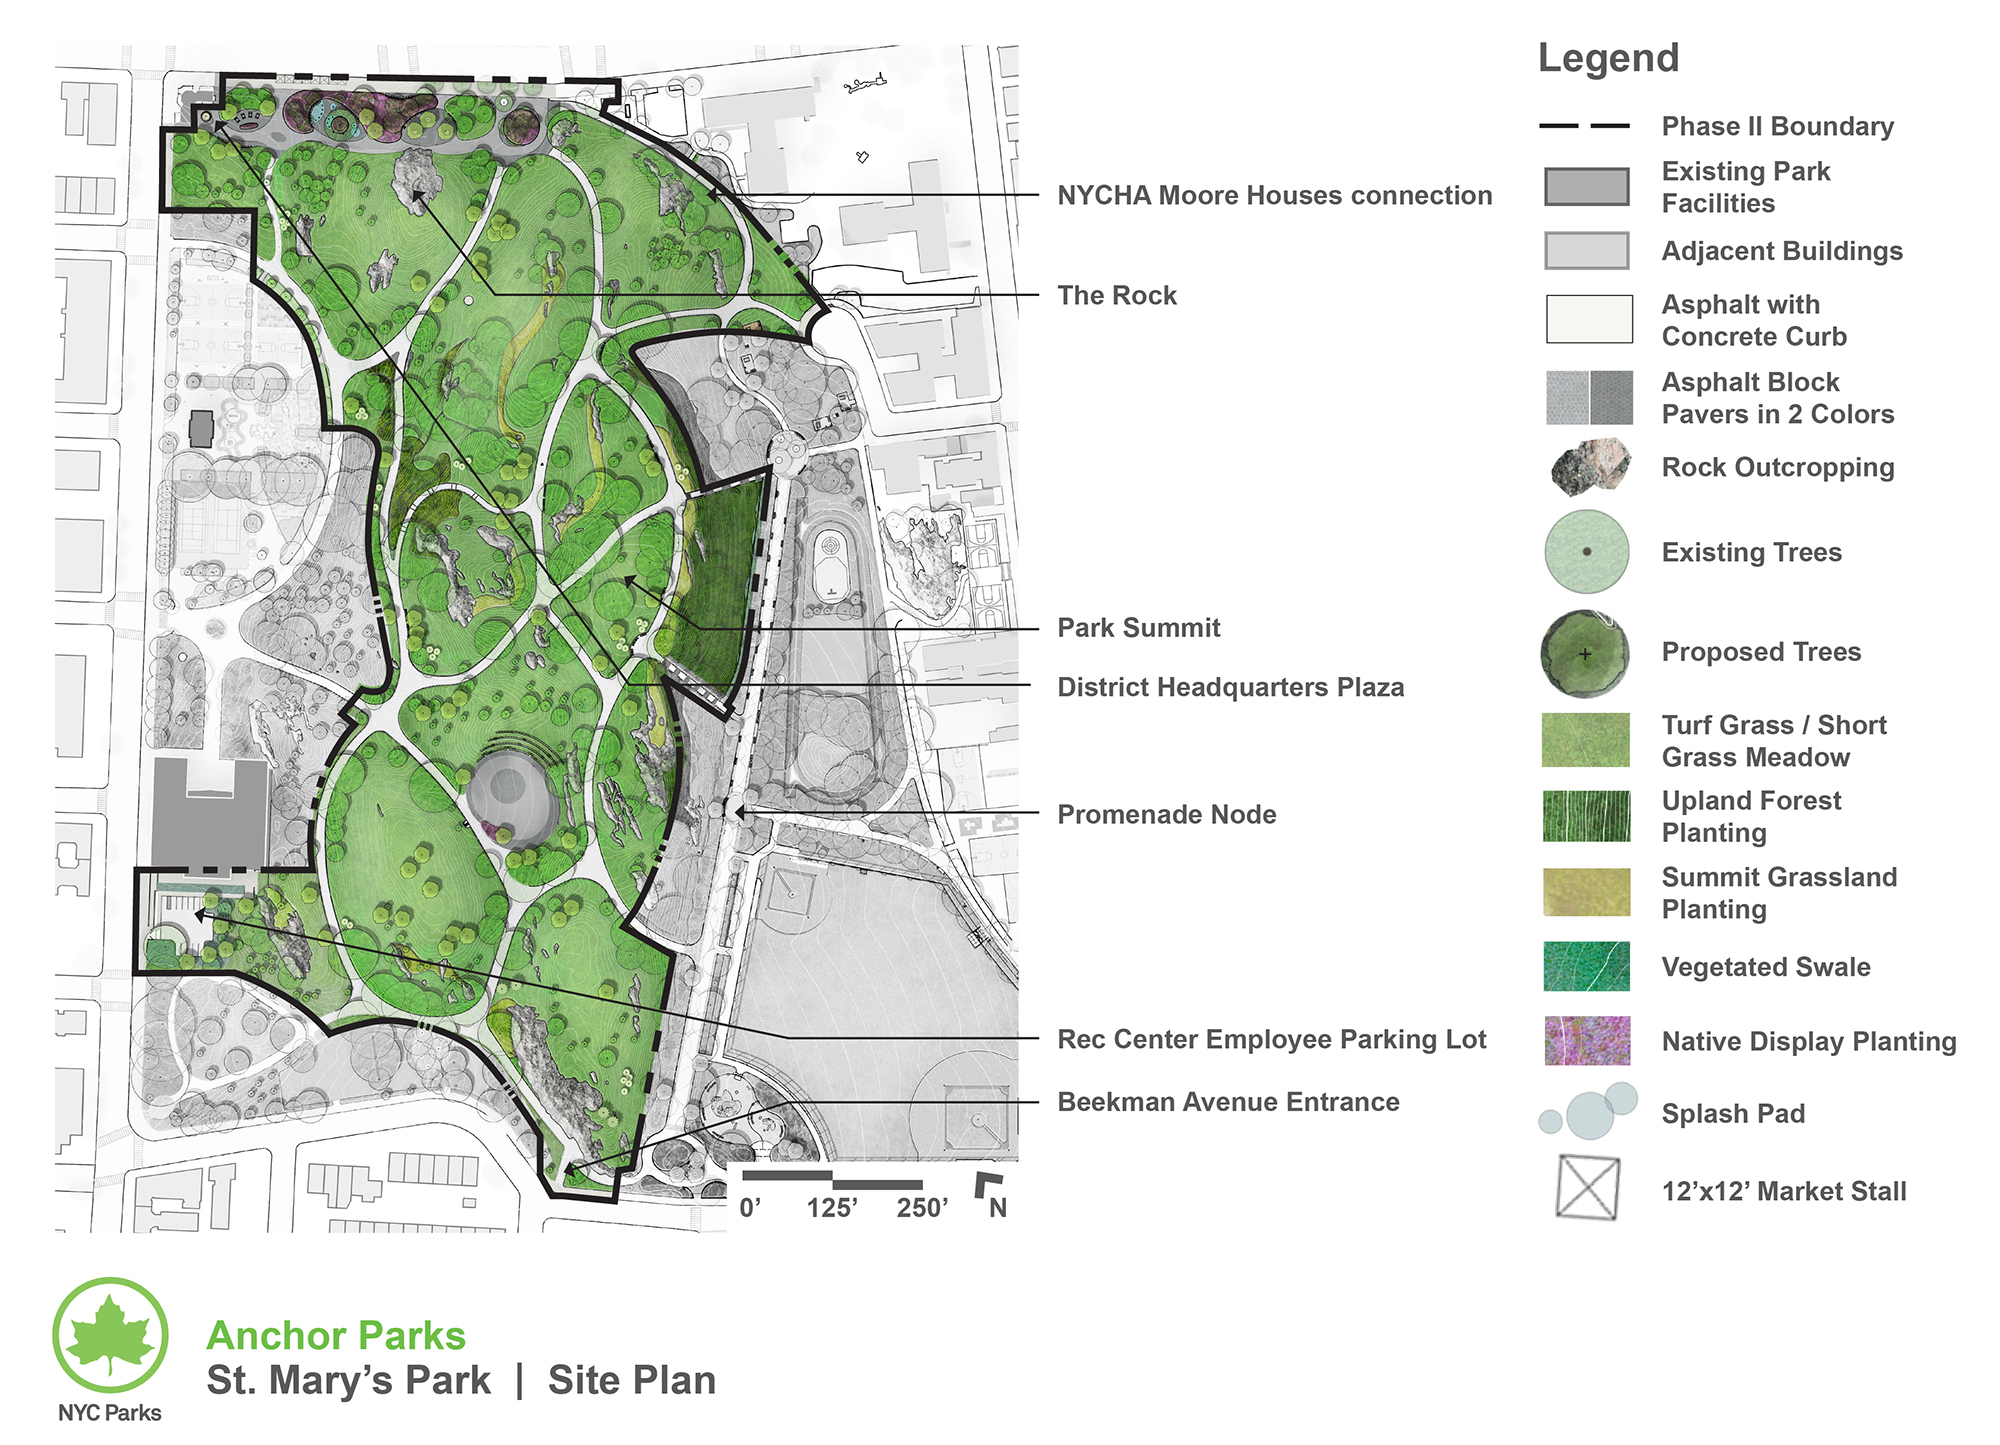 Design of St. Mary's Park Amphitheater, Plaza, and Pathways Reconstruction